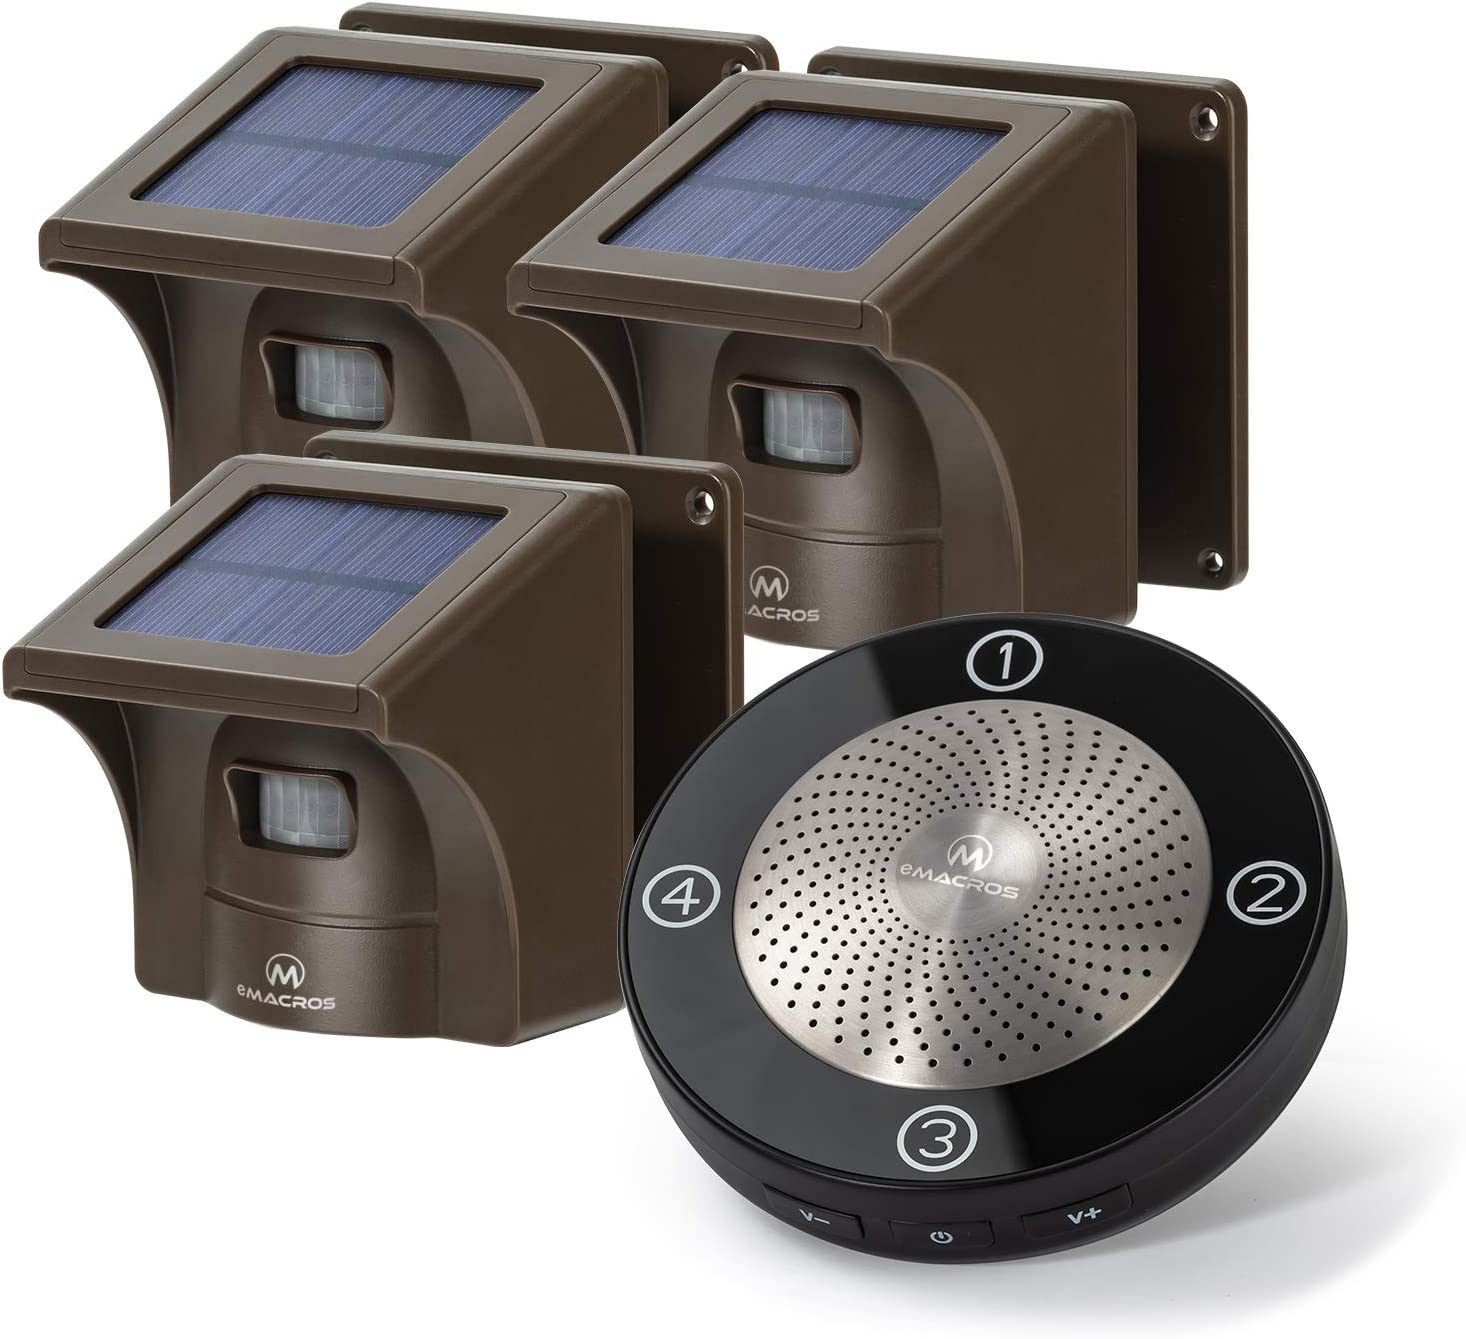 1/2 Mile Long Range Solar Wireless Driveway Alarm Outdoor Weather Resistant Motion Sensor & Detector-Security Alert System-Monitor & Protect Outside Property,No Need to Replace Battery